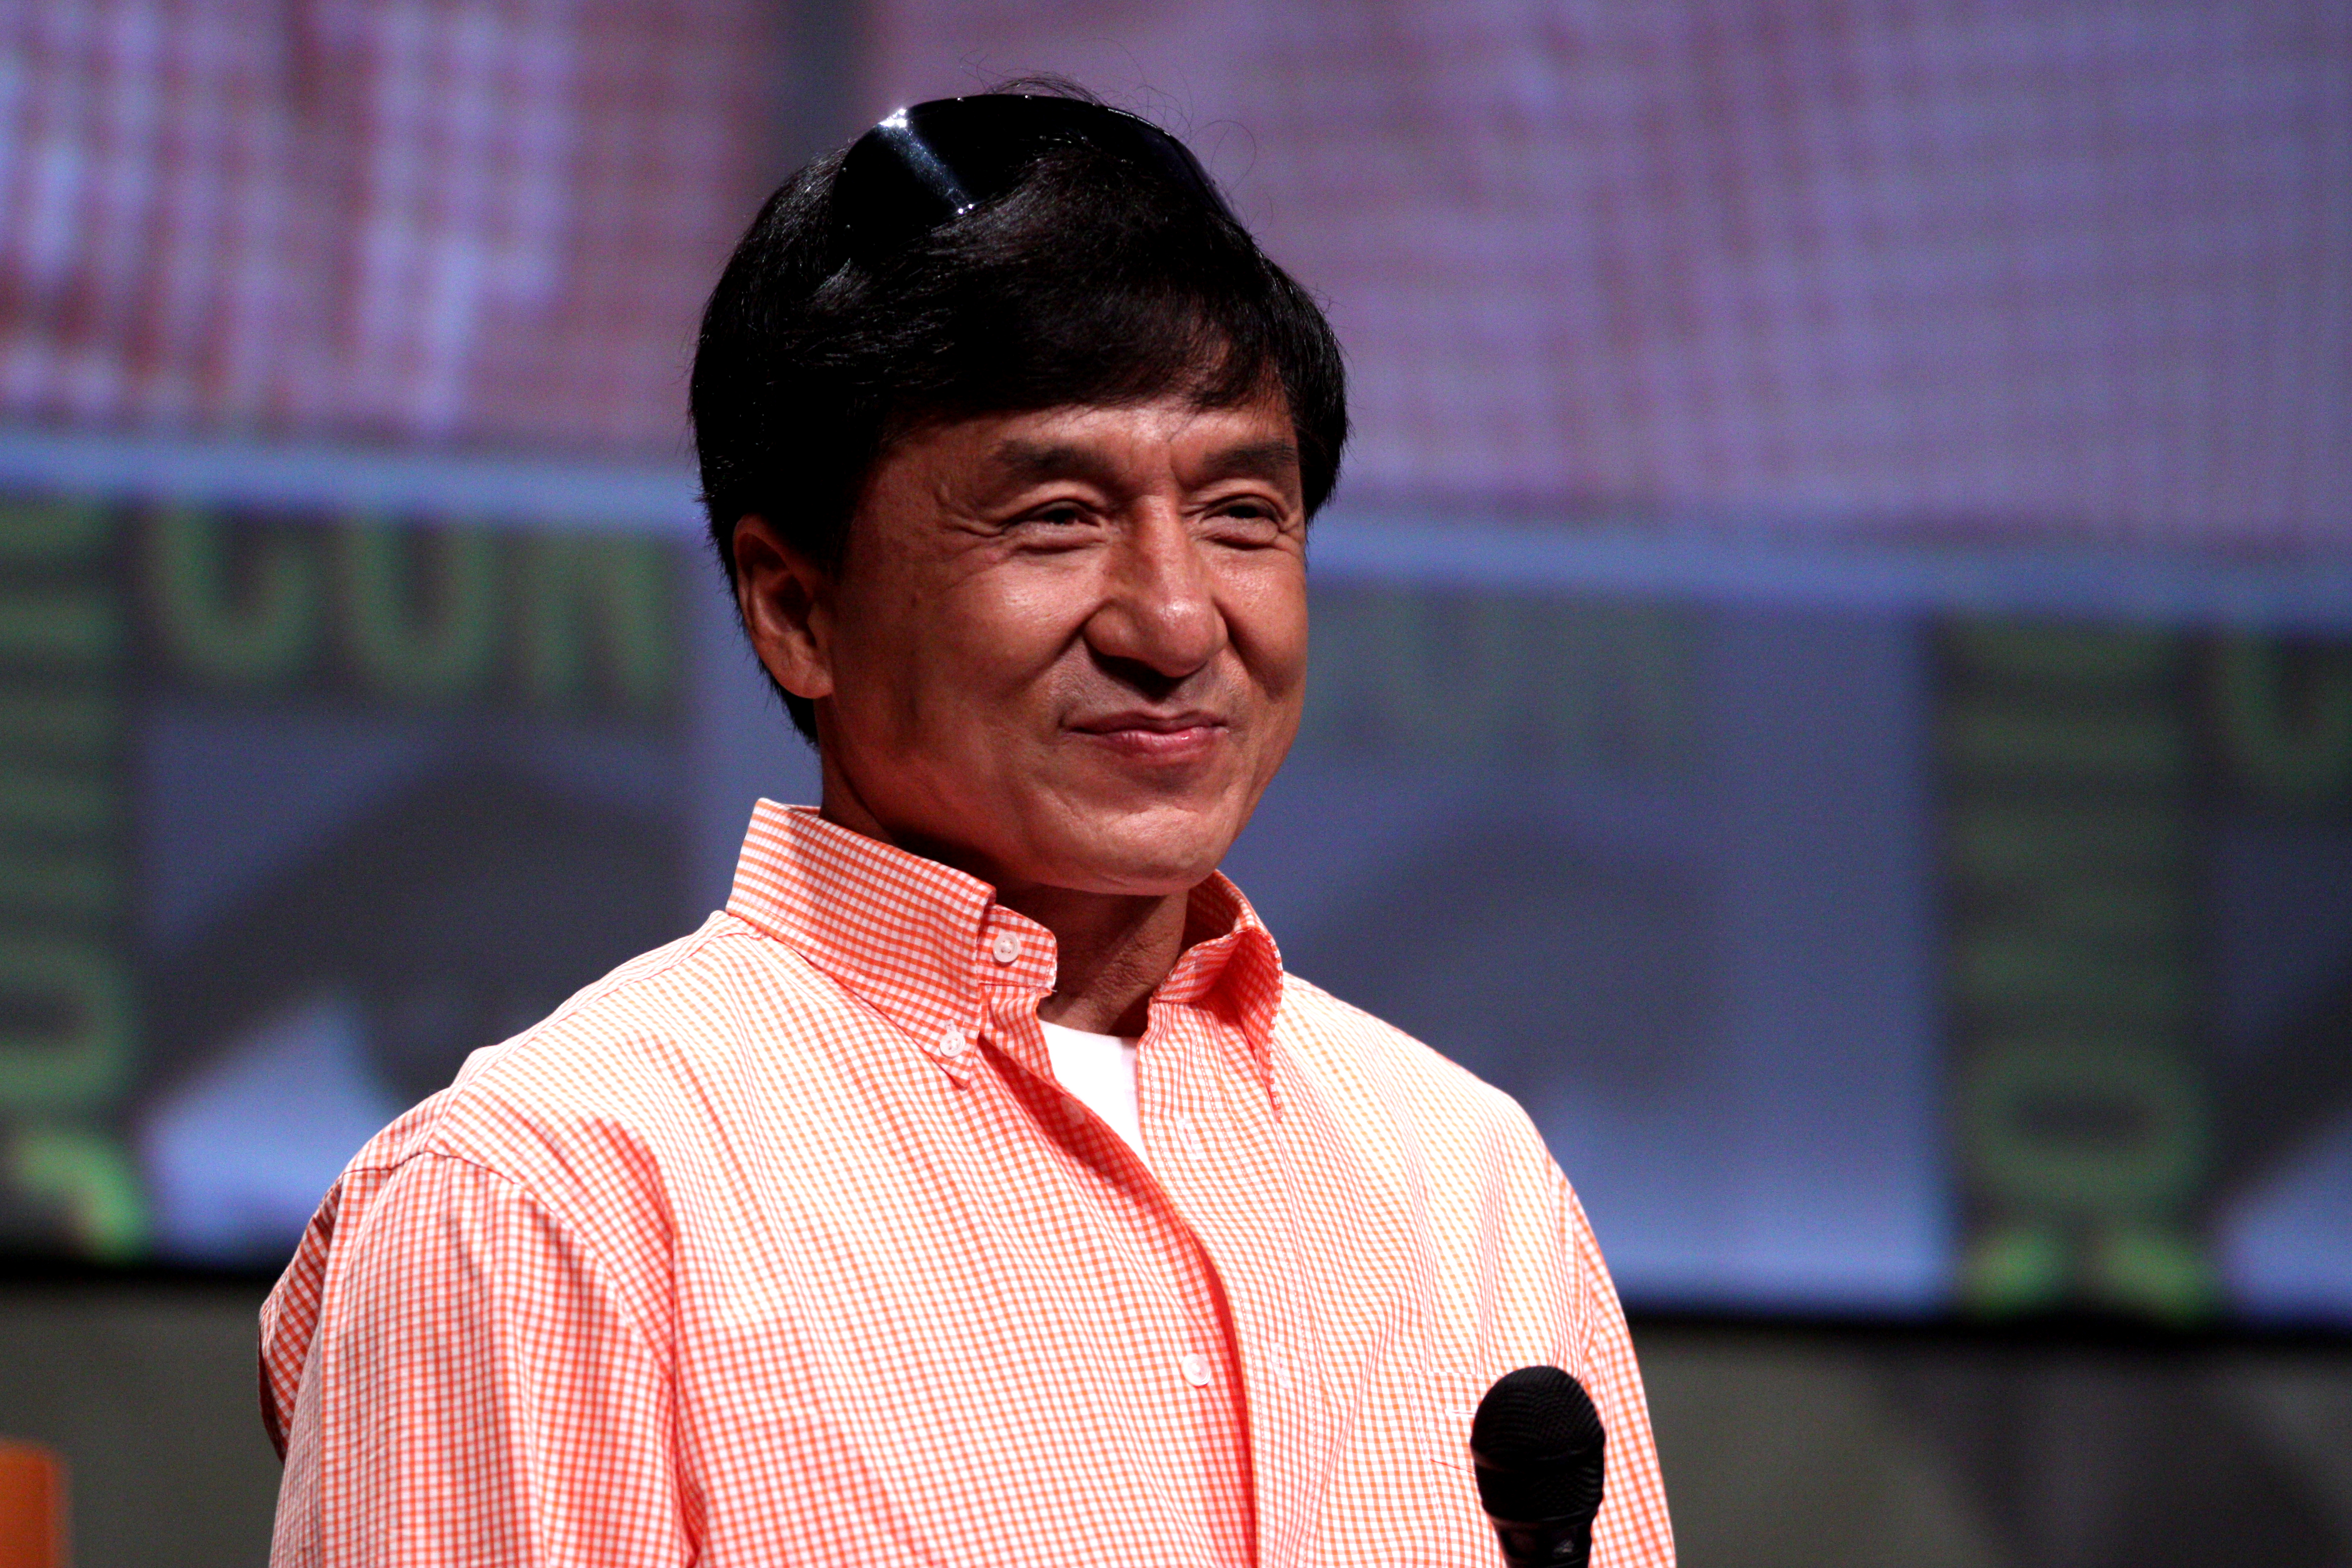 Jackie Chan Hd Background